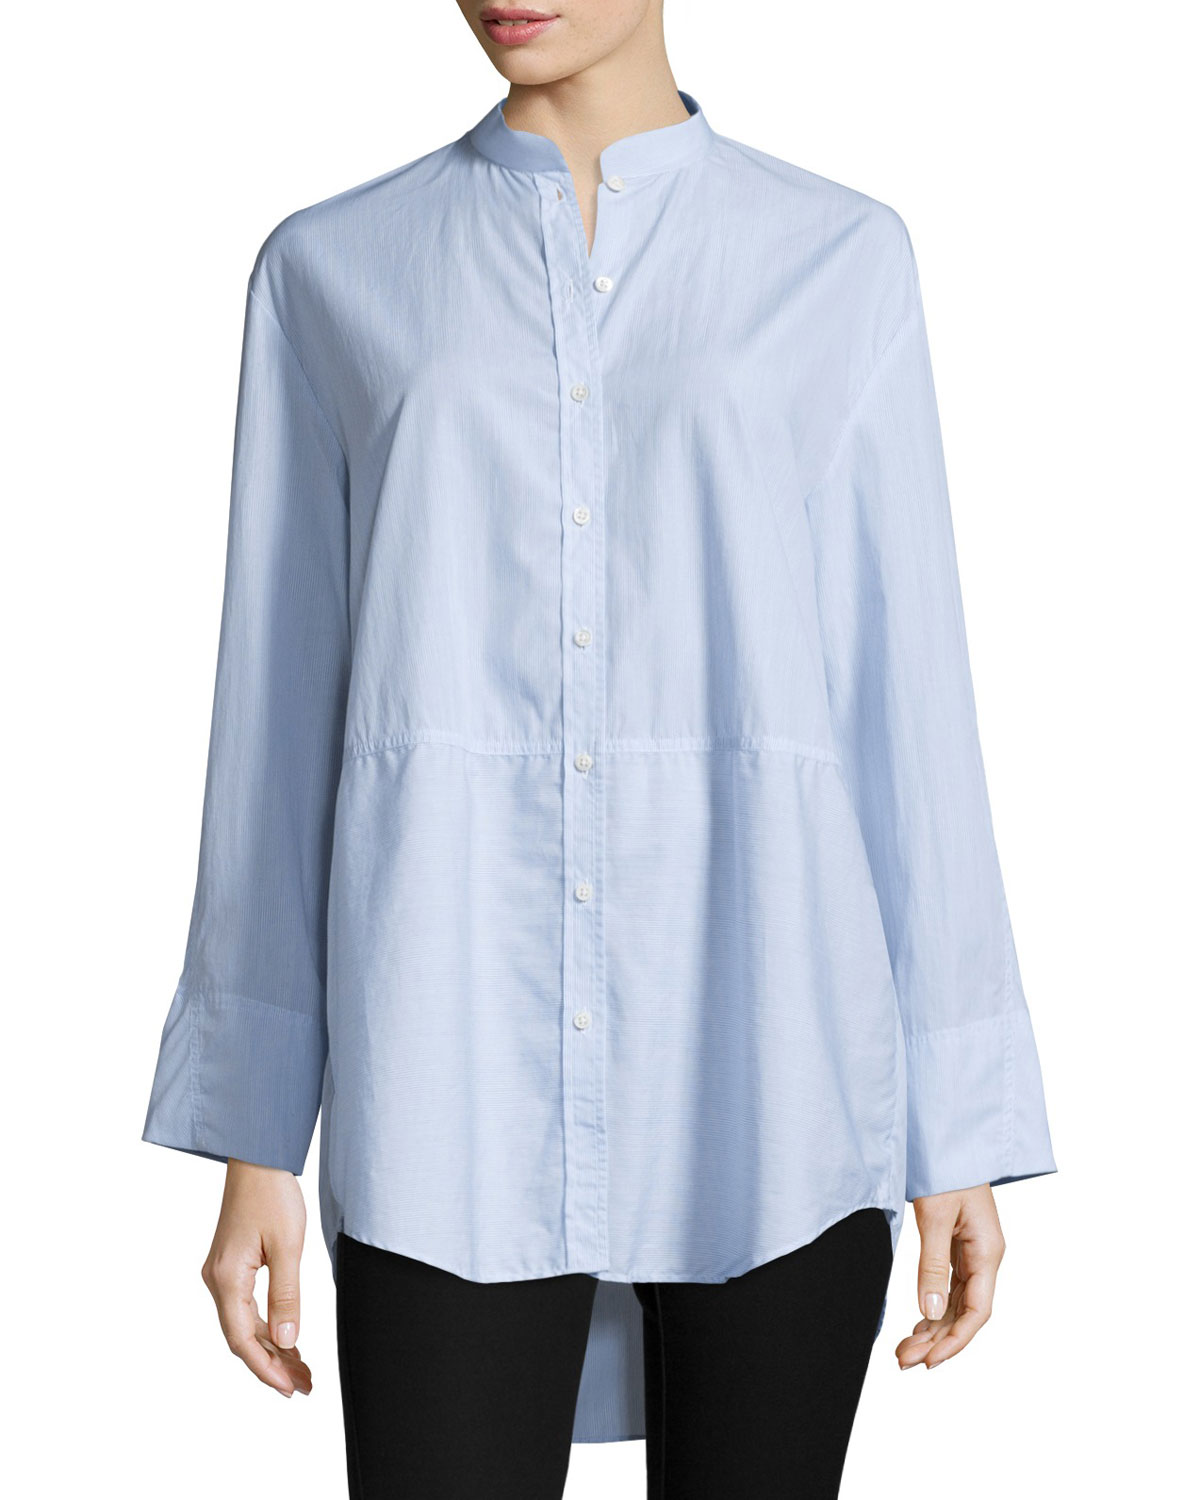 Lenny Long-Sleeve Pinstripe Poplin Shirt, Blue